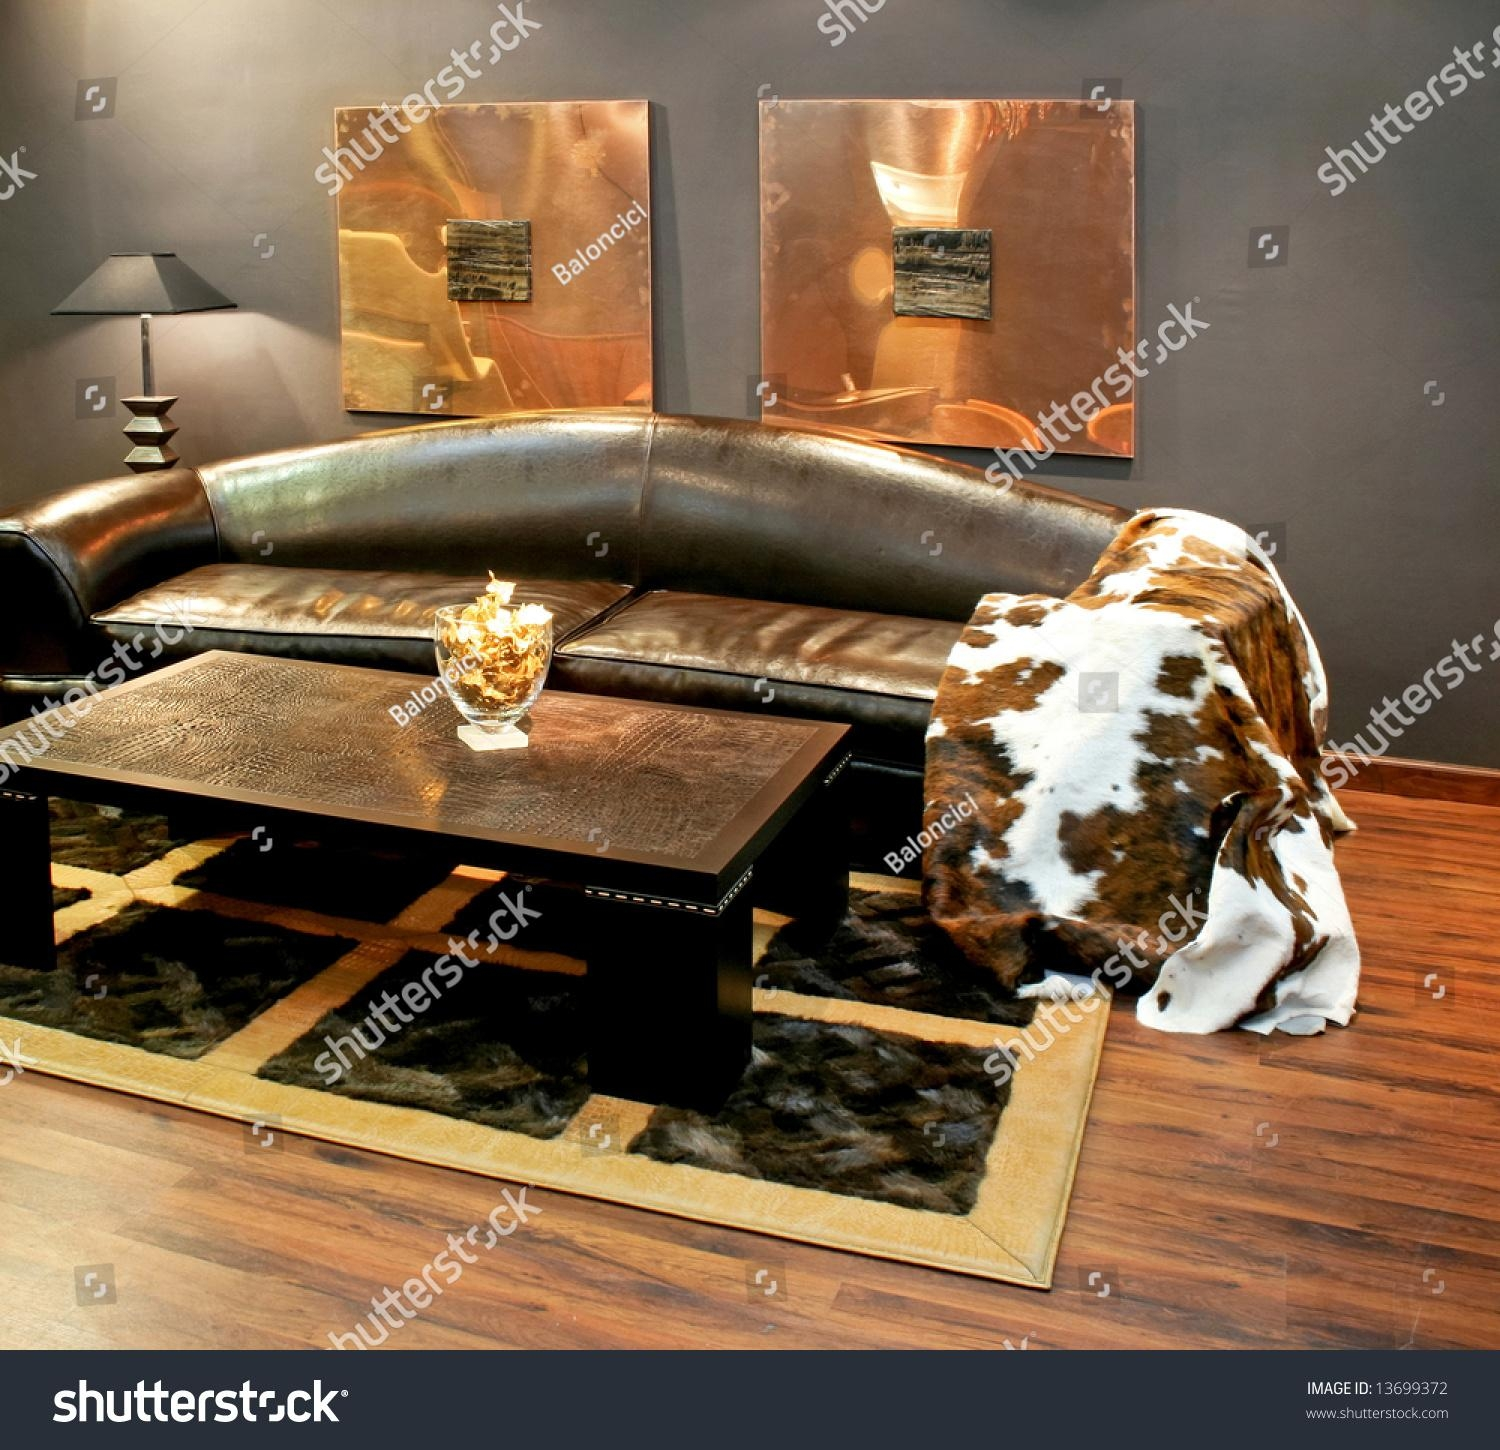 Black Leather Sofa Cowhide Cover Pillows Stock Photo 13699372 Throughout Cowhide Sofas (Image 1 of 20)